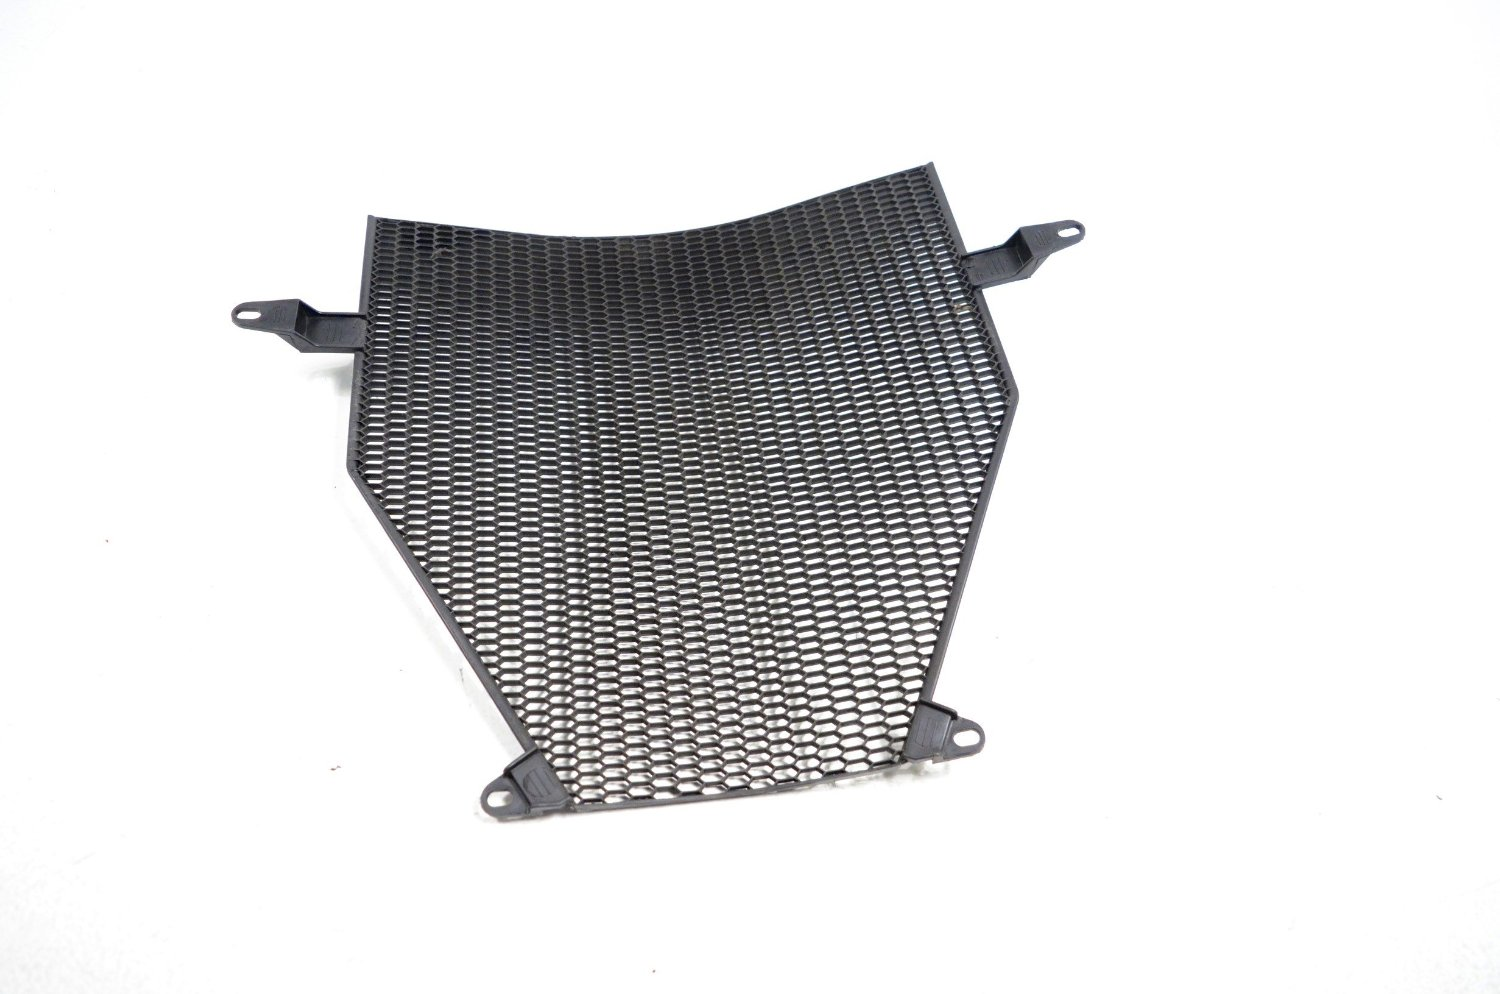 NEW OEM KTM RADIATOR PROTECTION GRILLE 2013-2015 1190 ADVENTURE ABS 60435940044